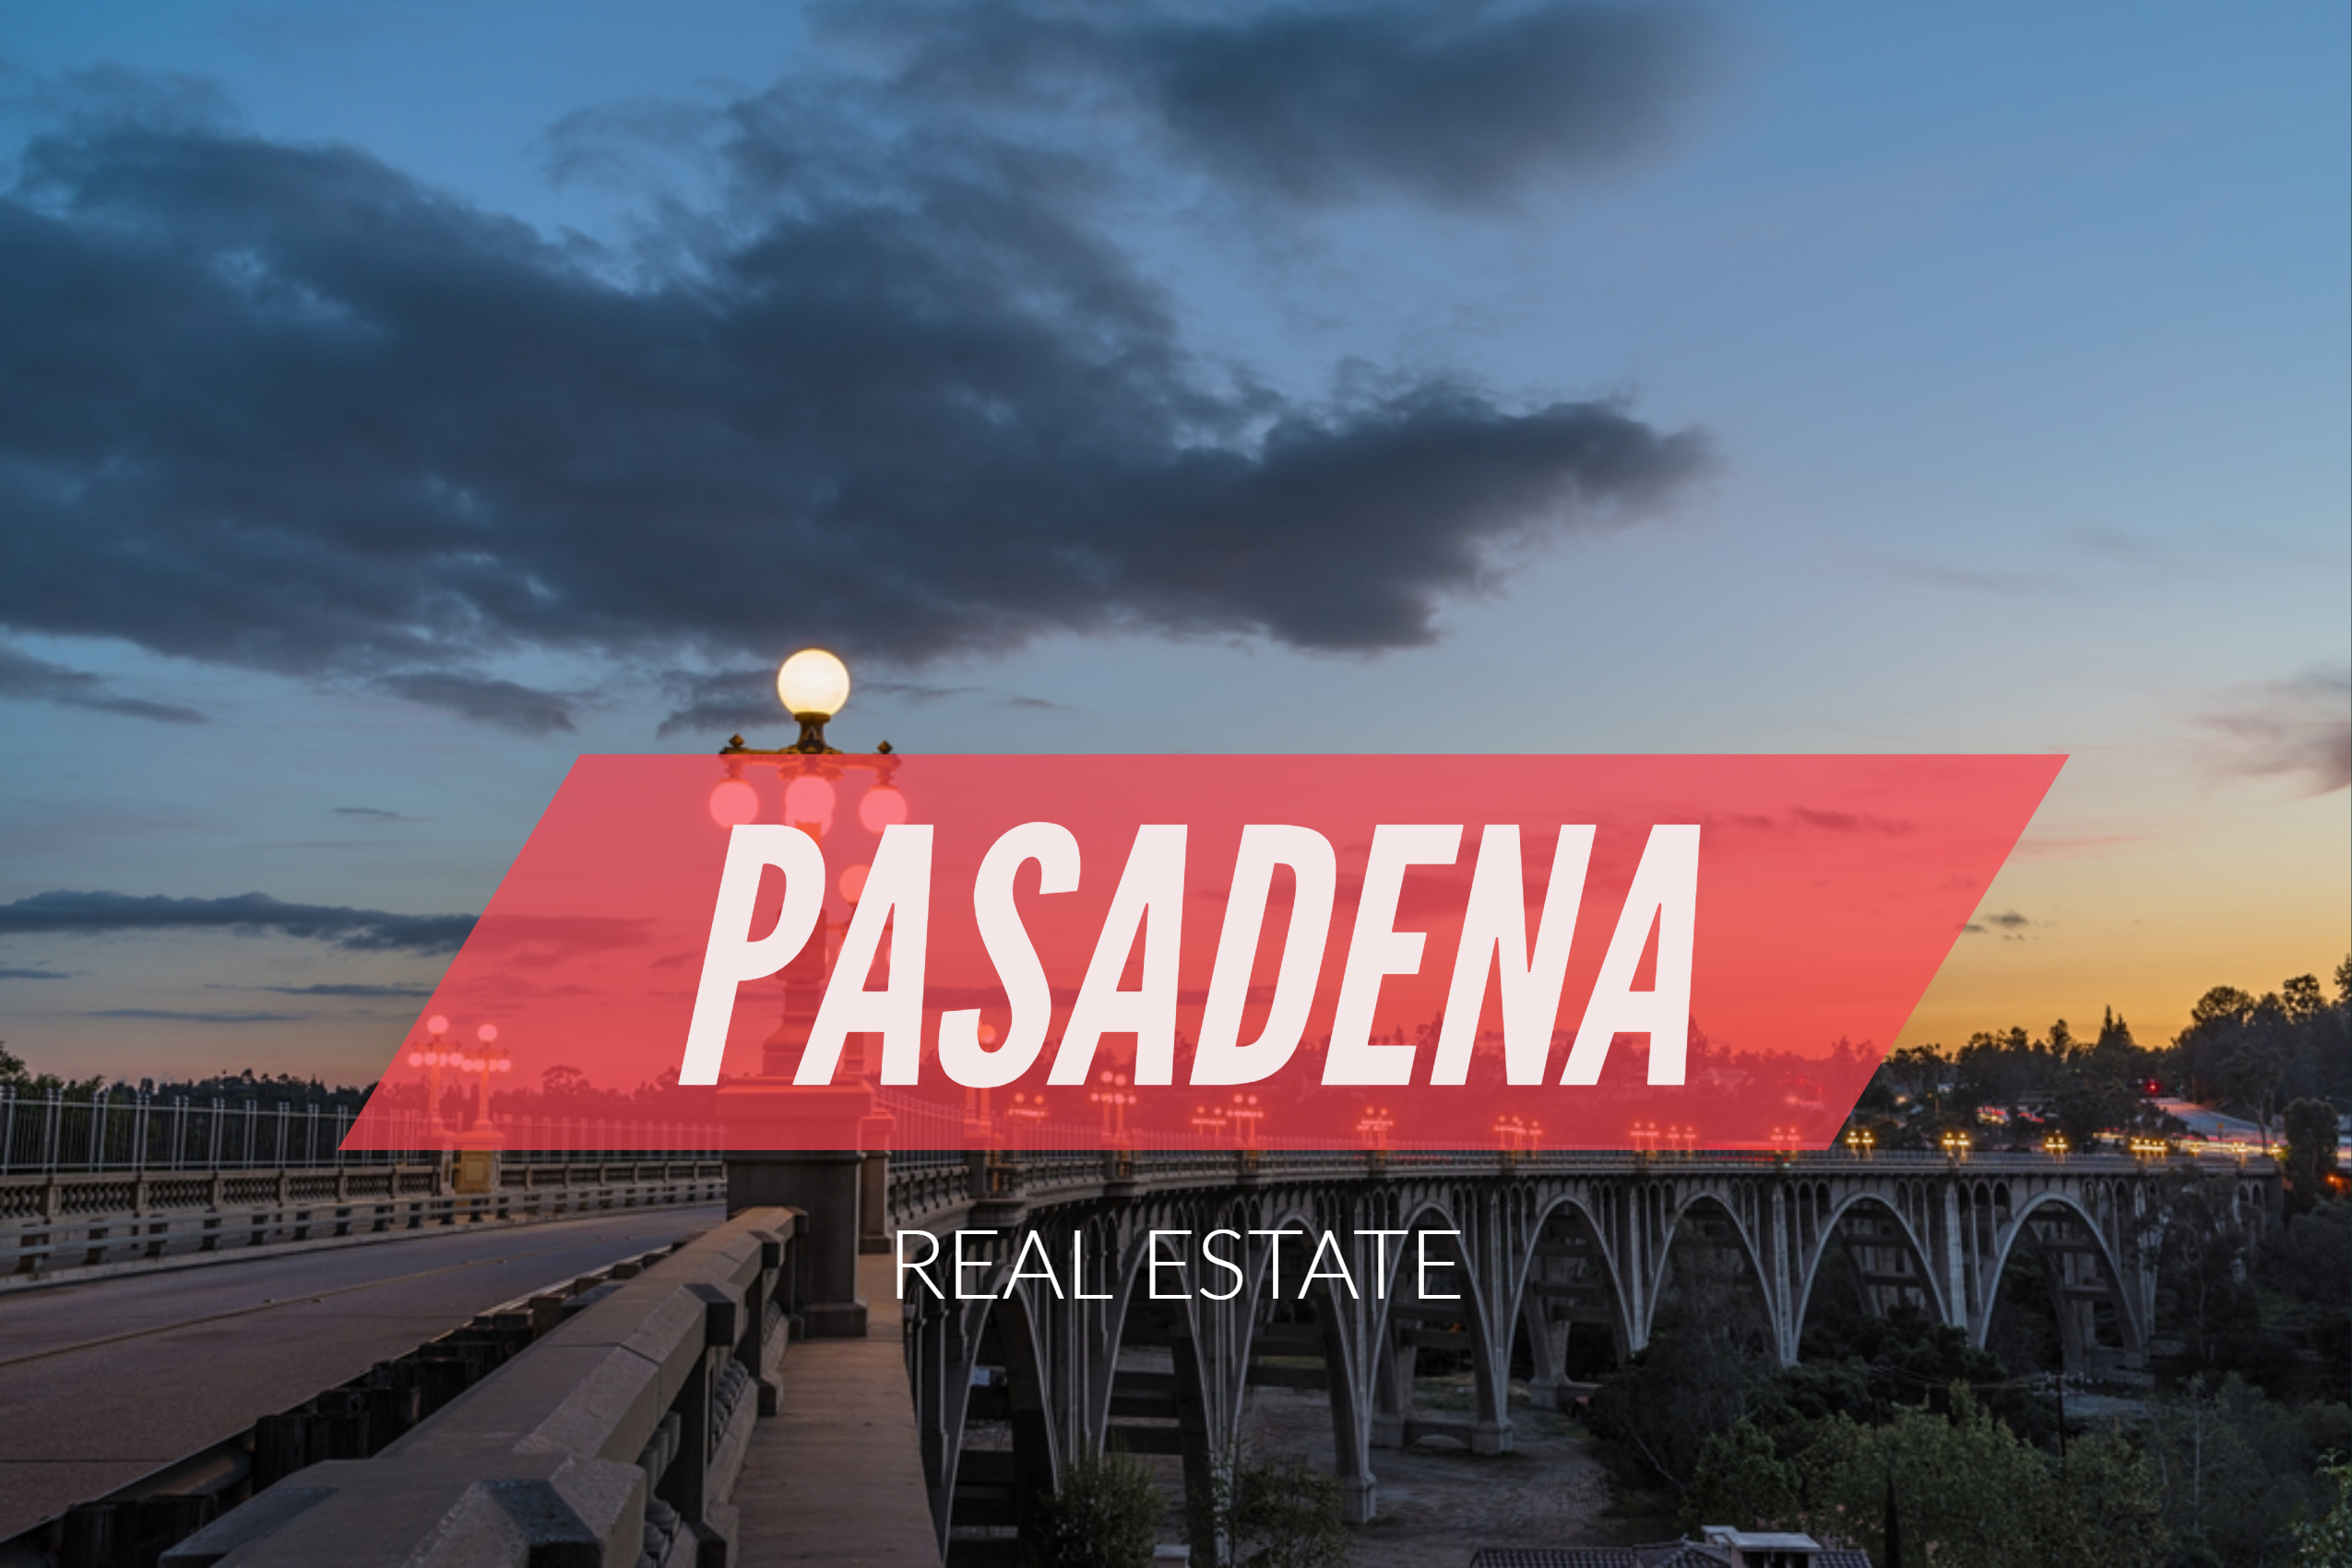 pasadena-real-estate-pasadena-real-estate-agent-pasadena-realtor